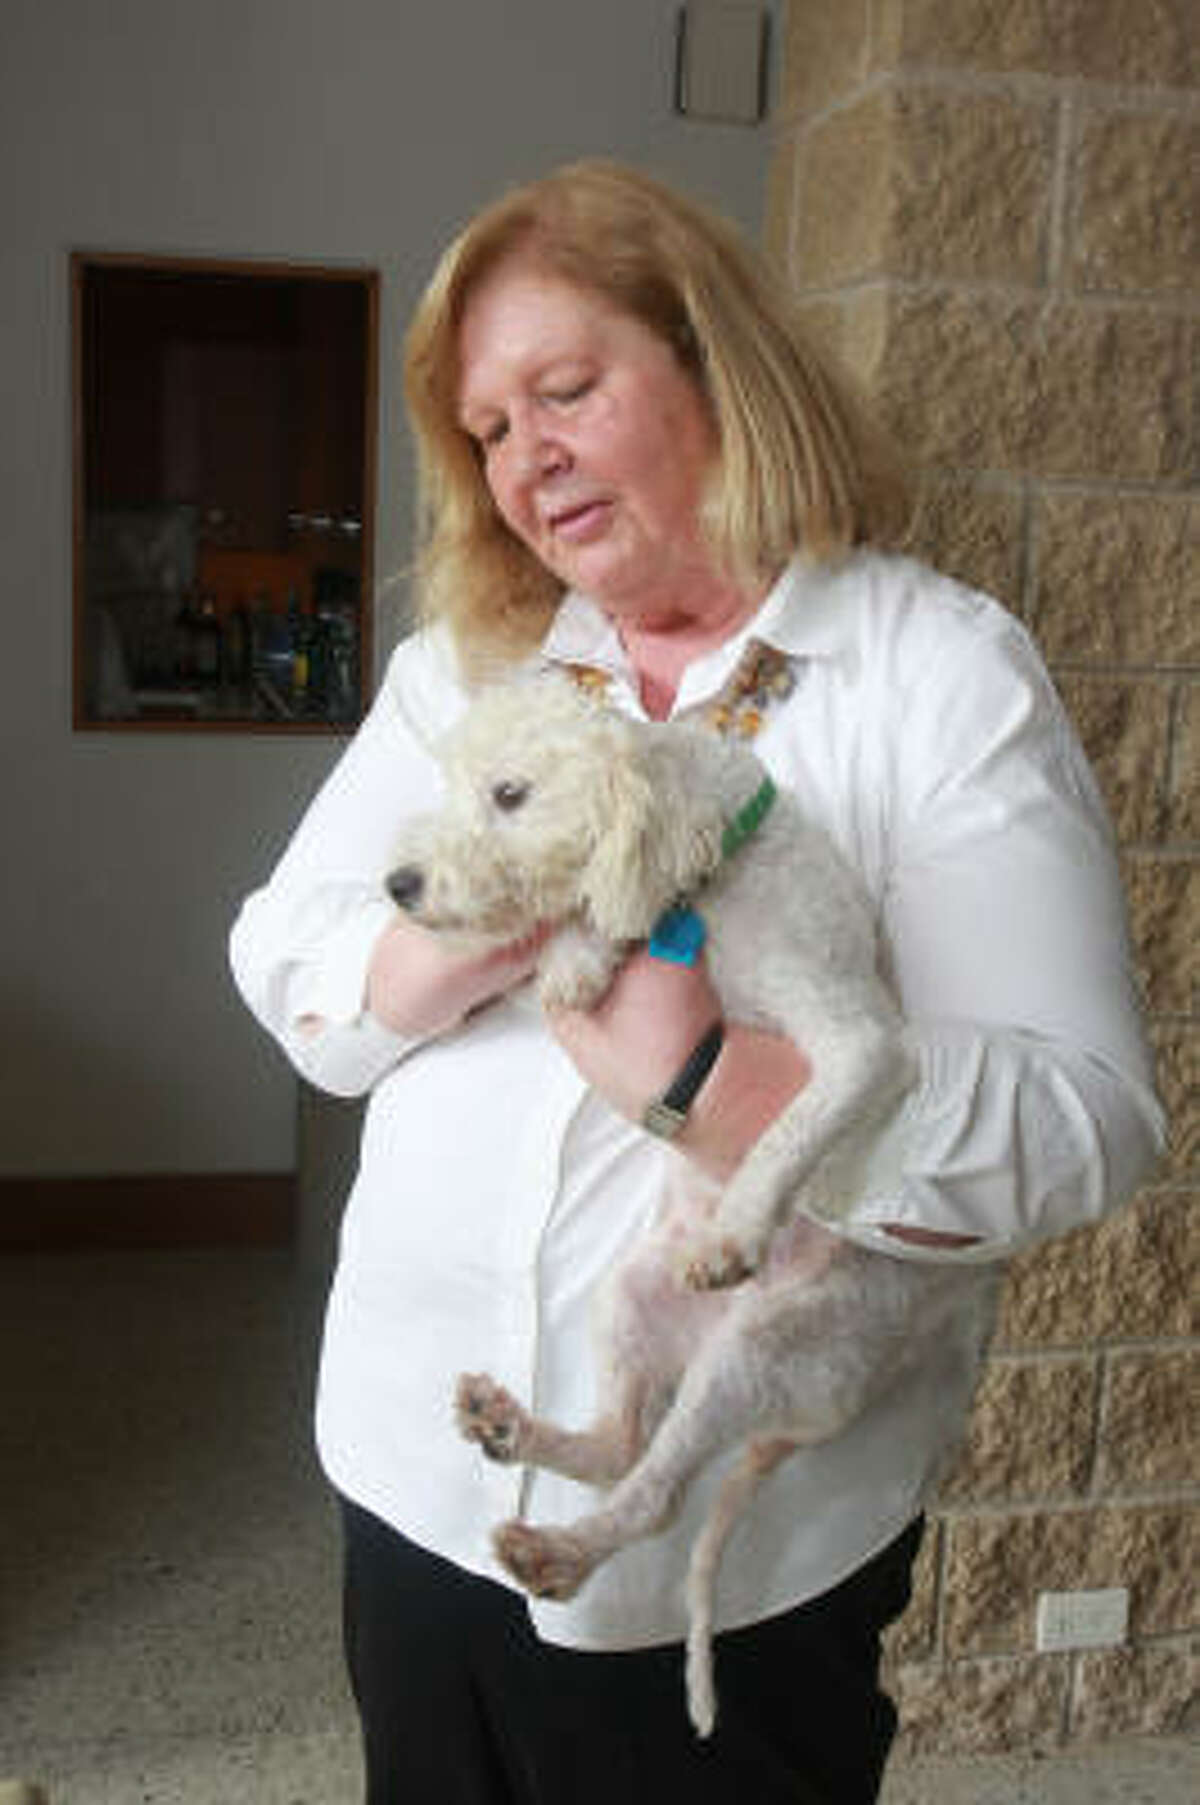 """""""I have been rescuing animals all my life,"""" said Wetmore, who is holding Wilson, a Bichon mix found living under a house with horribly matted hair. Wetmore describes him as a gentle soul."""